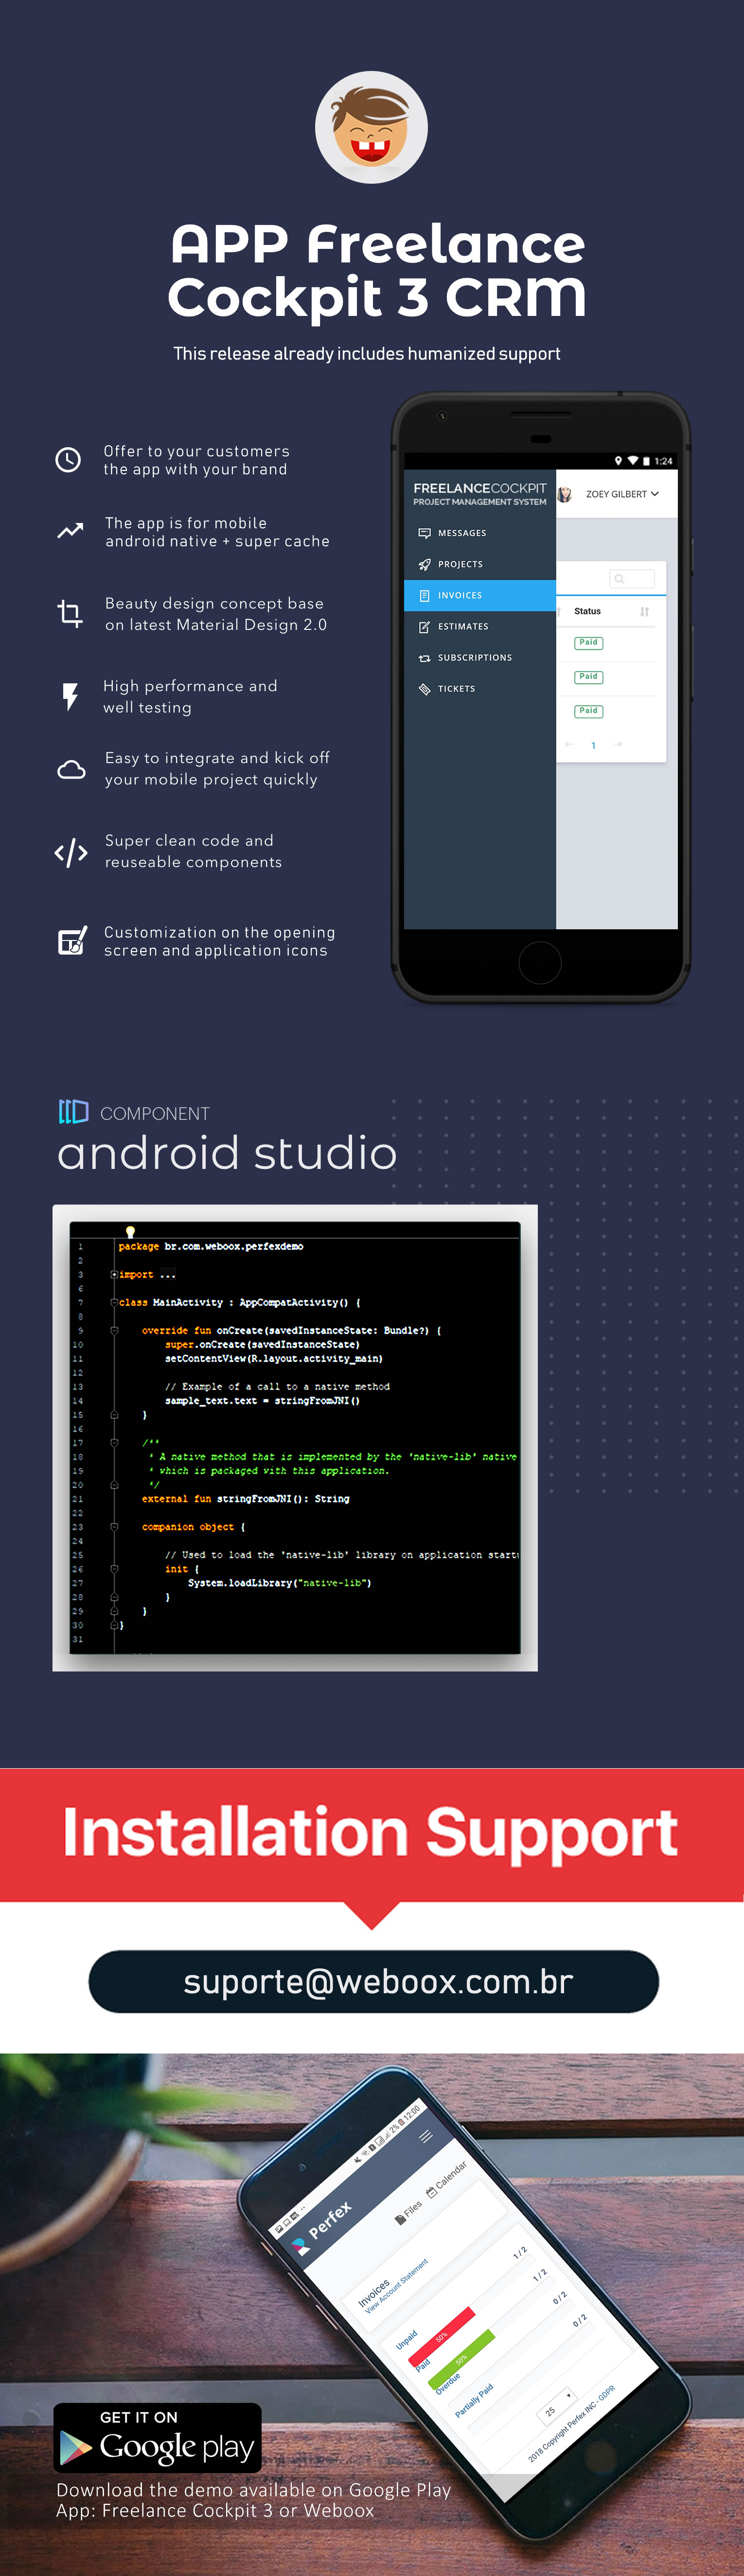 Weboox Convert - Freelance Cockpit 3 to app Android - 3